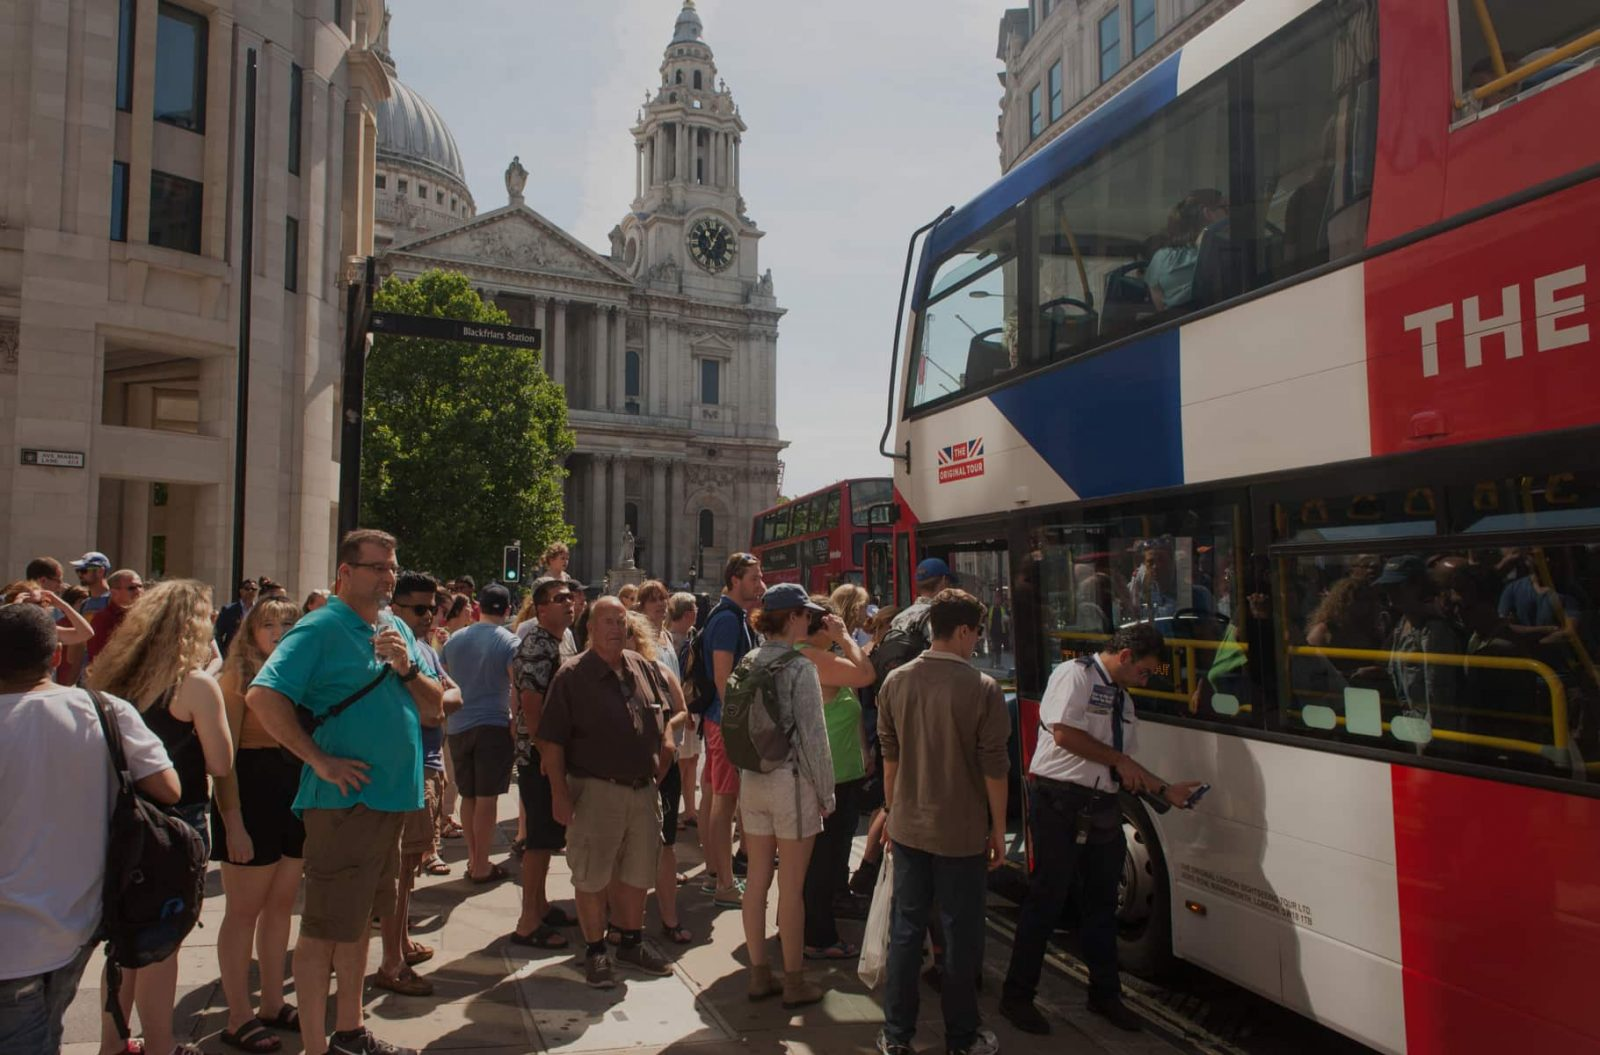 People queuing for bus